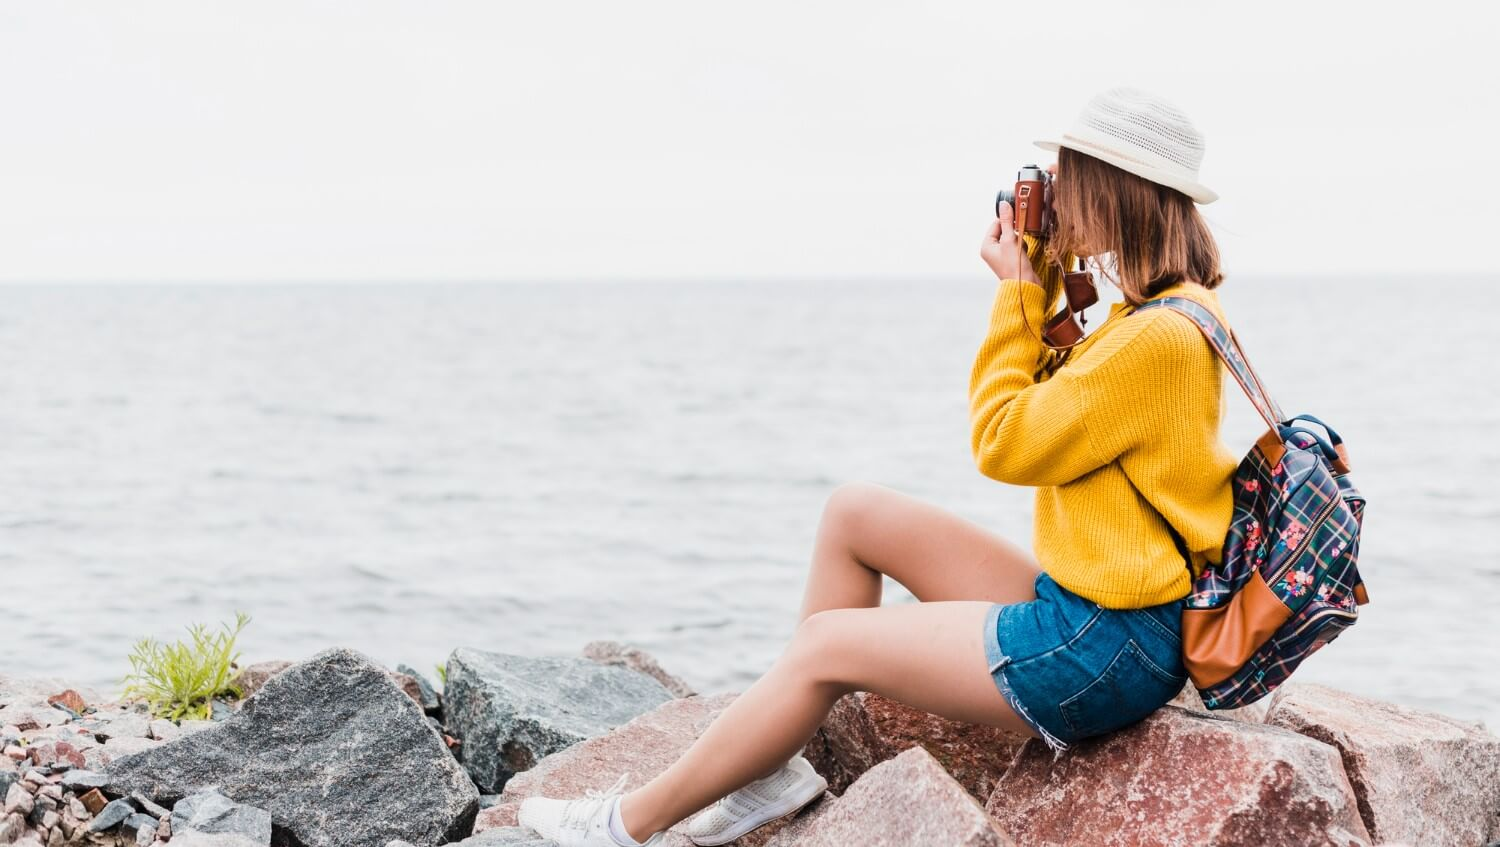 Travel guide: Safe travel destinations for solo women travelers